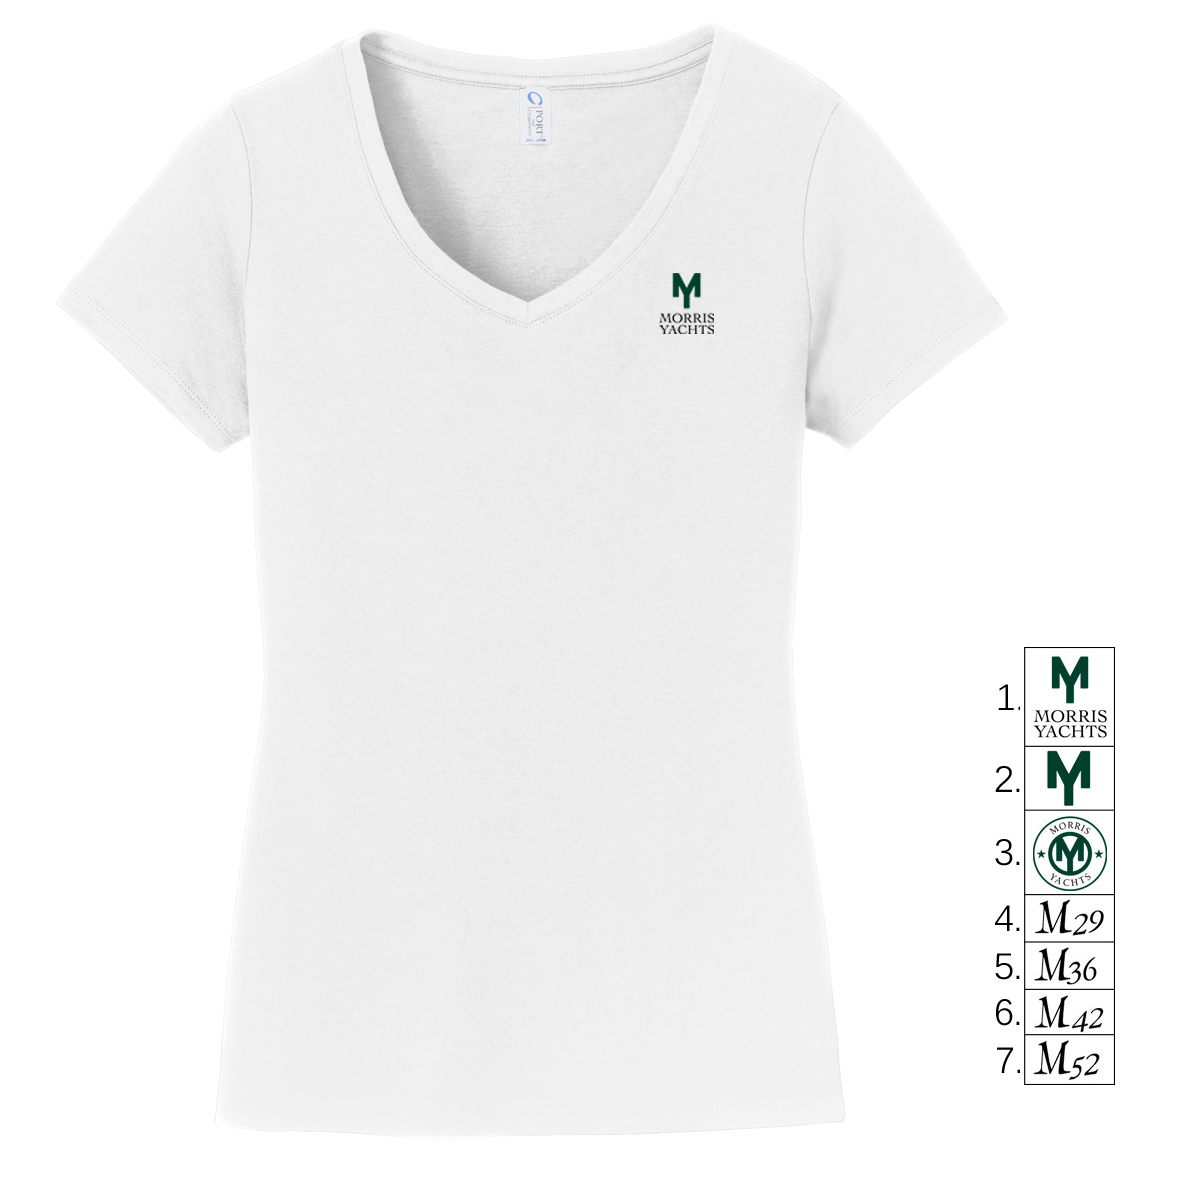 MORRIS YACHTS - LADIES V-NECK TEE